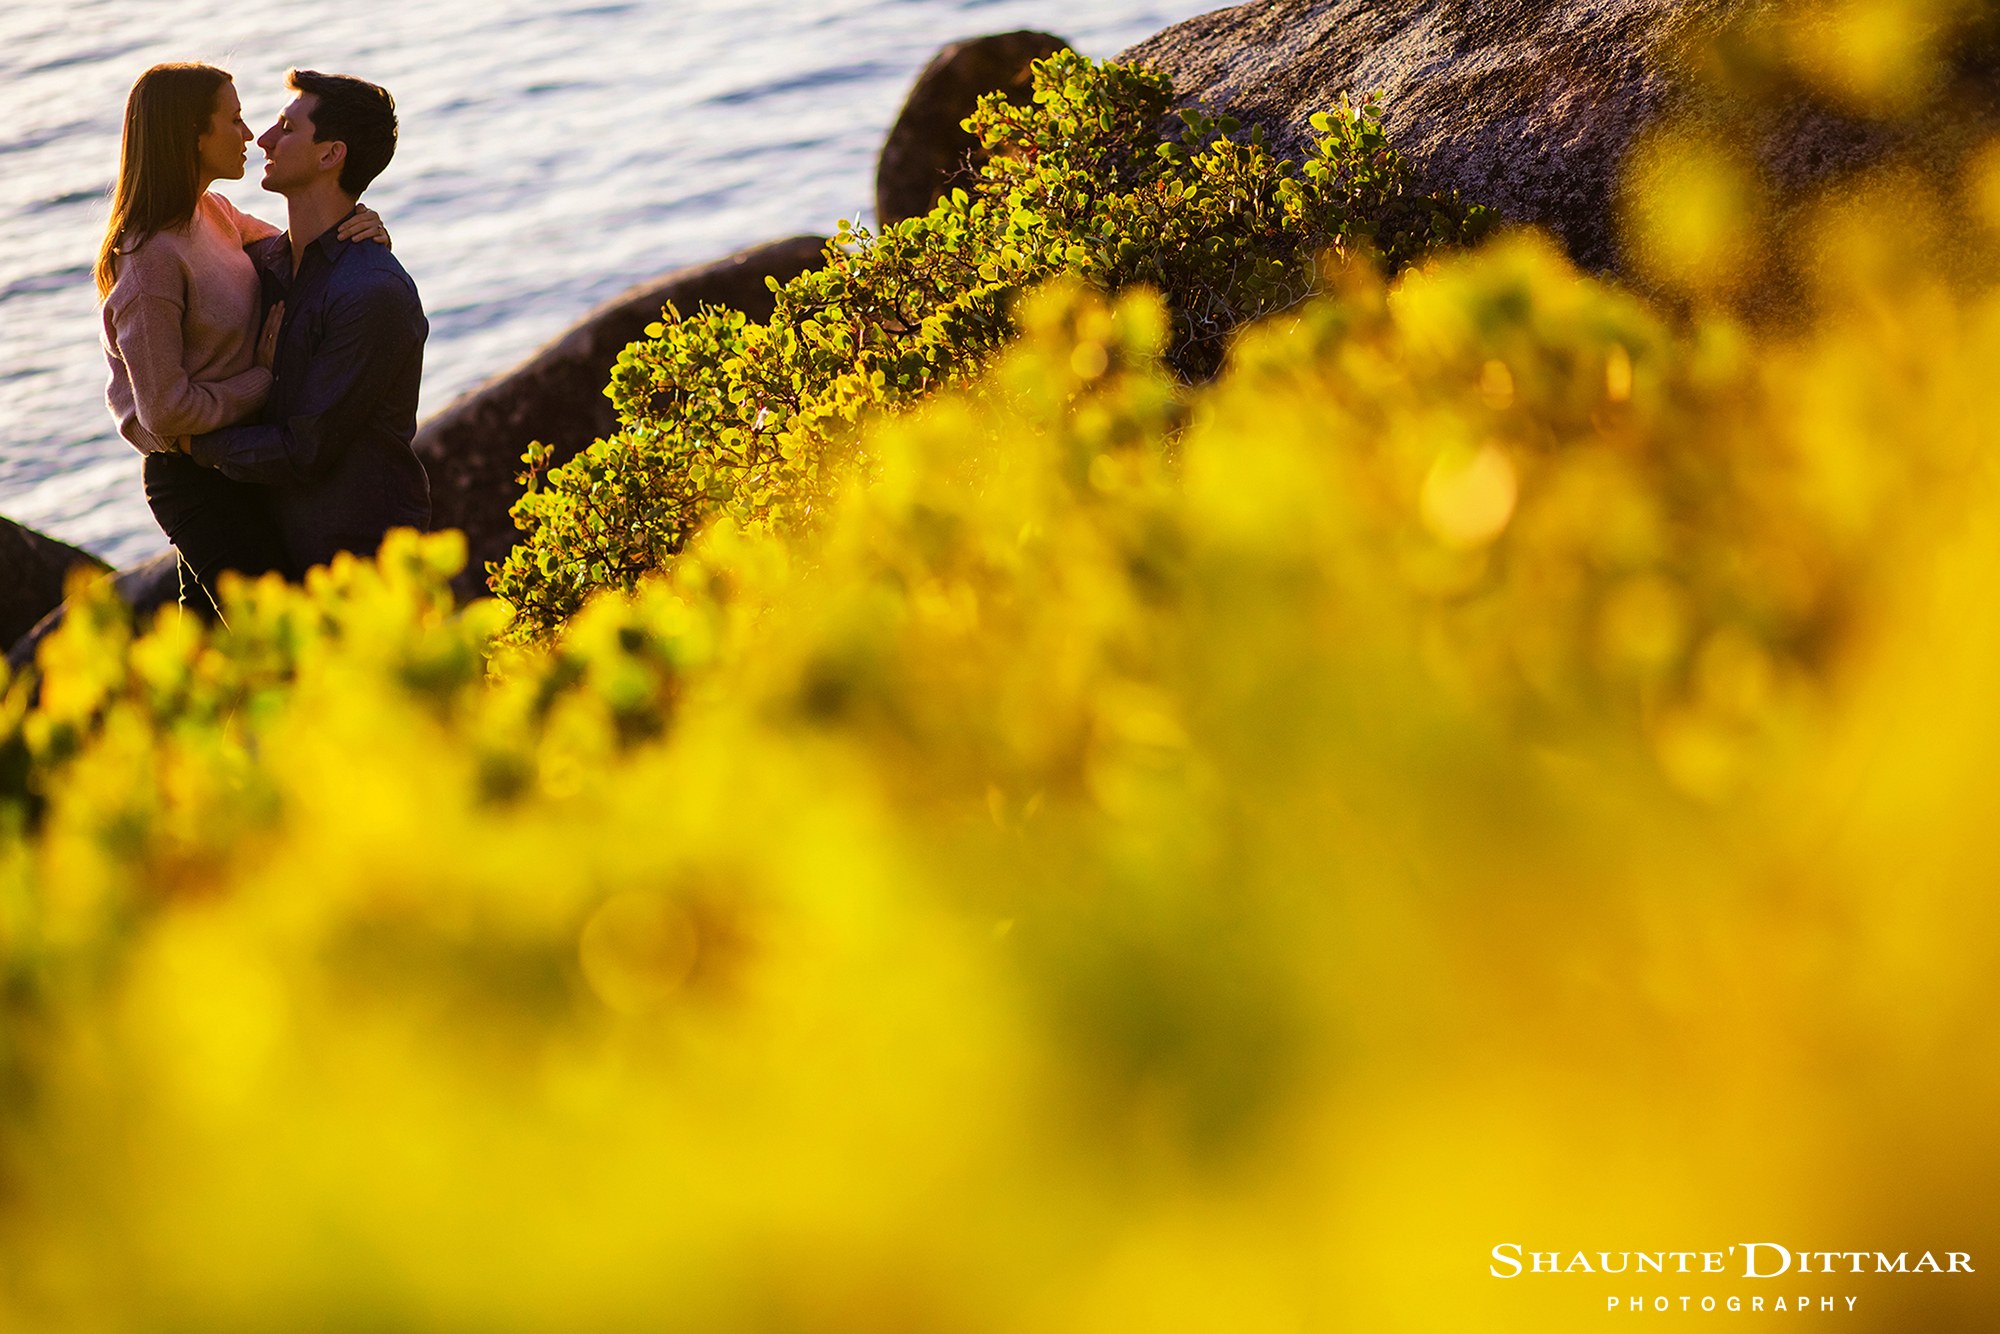 Kim_Daniel_350_Bonzai_Rock_Engagement_Lake_Tahoe_Shaunte_Dittmar_Photography.jpg